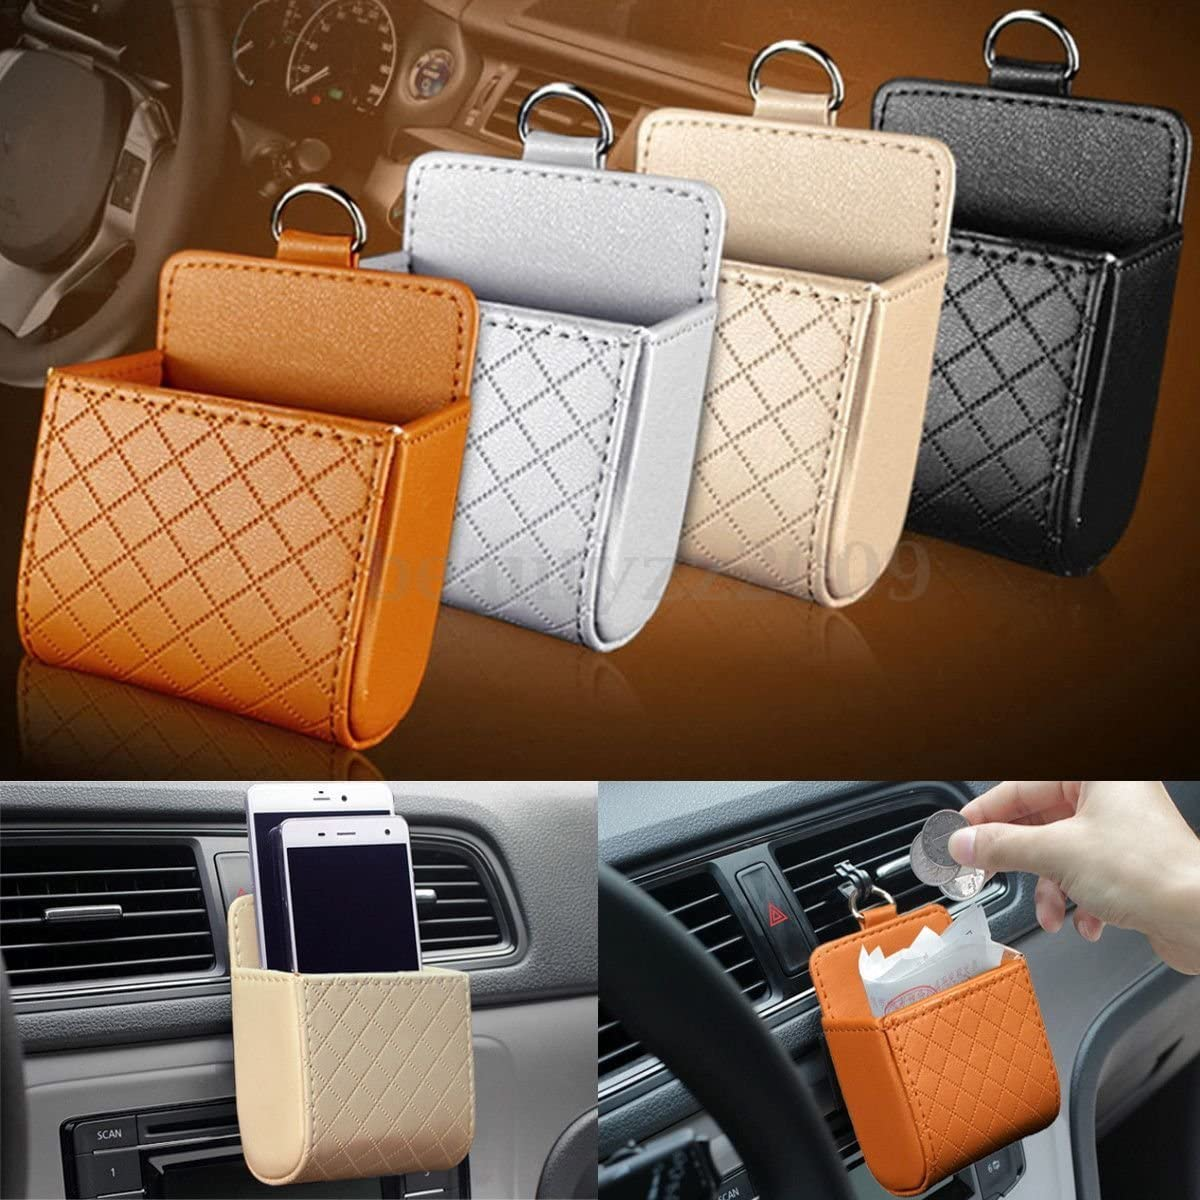 Yosoo Car Auto Seat Back Interior Air Vent Tidy Storage Coin Bag Case Organizer Cellphone Holder Pounch Box with Hook Gray